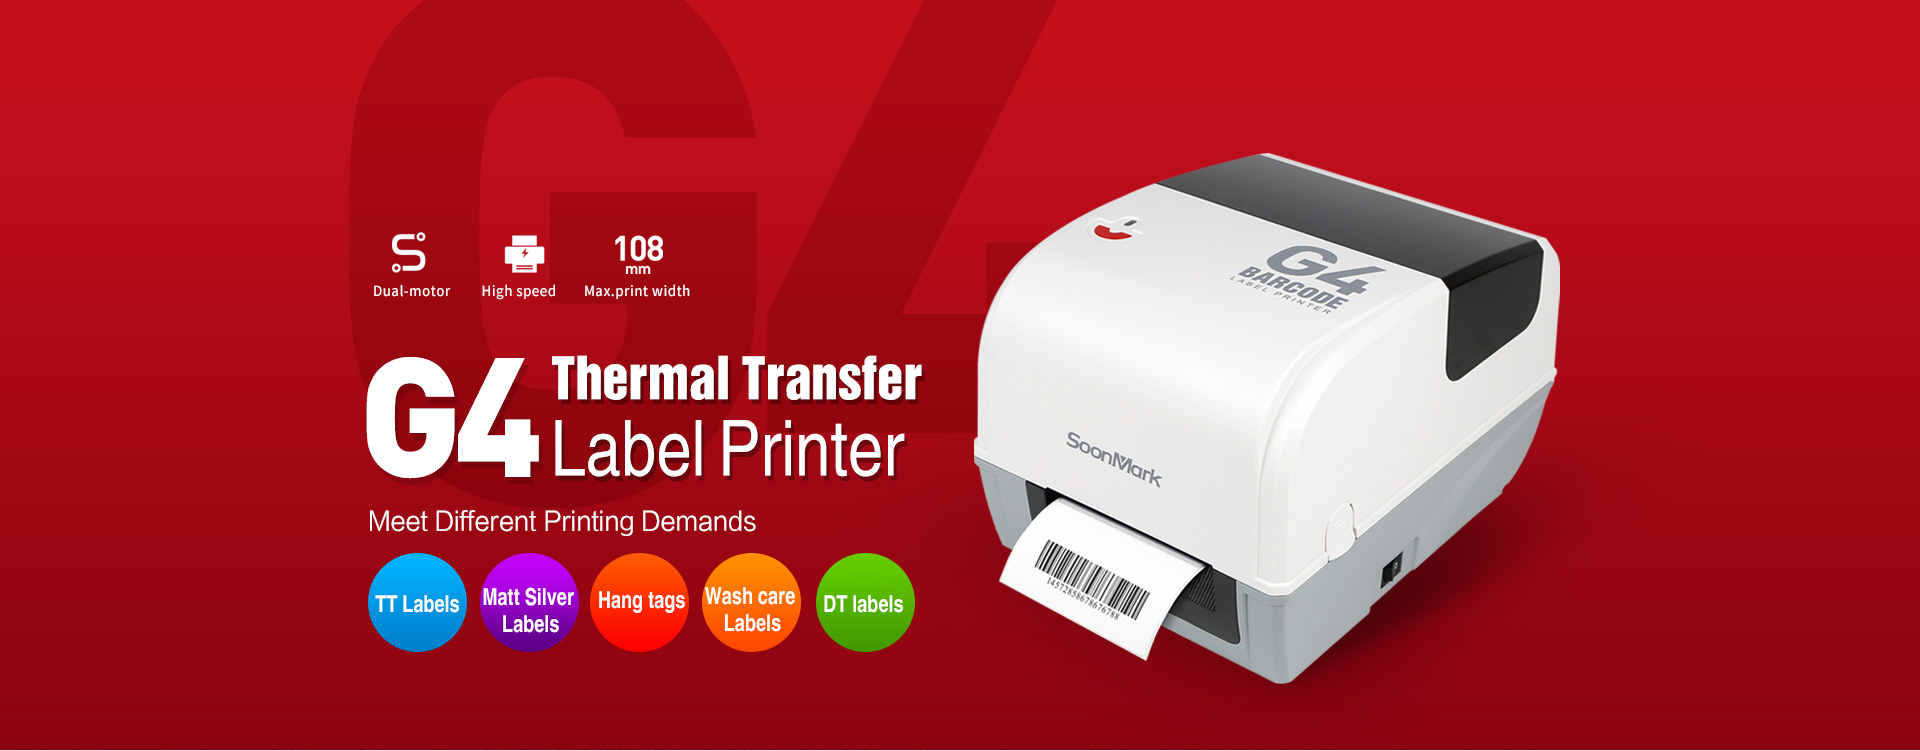 G4 thermal transfer printer